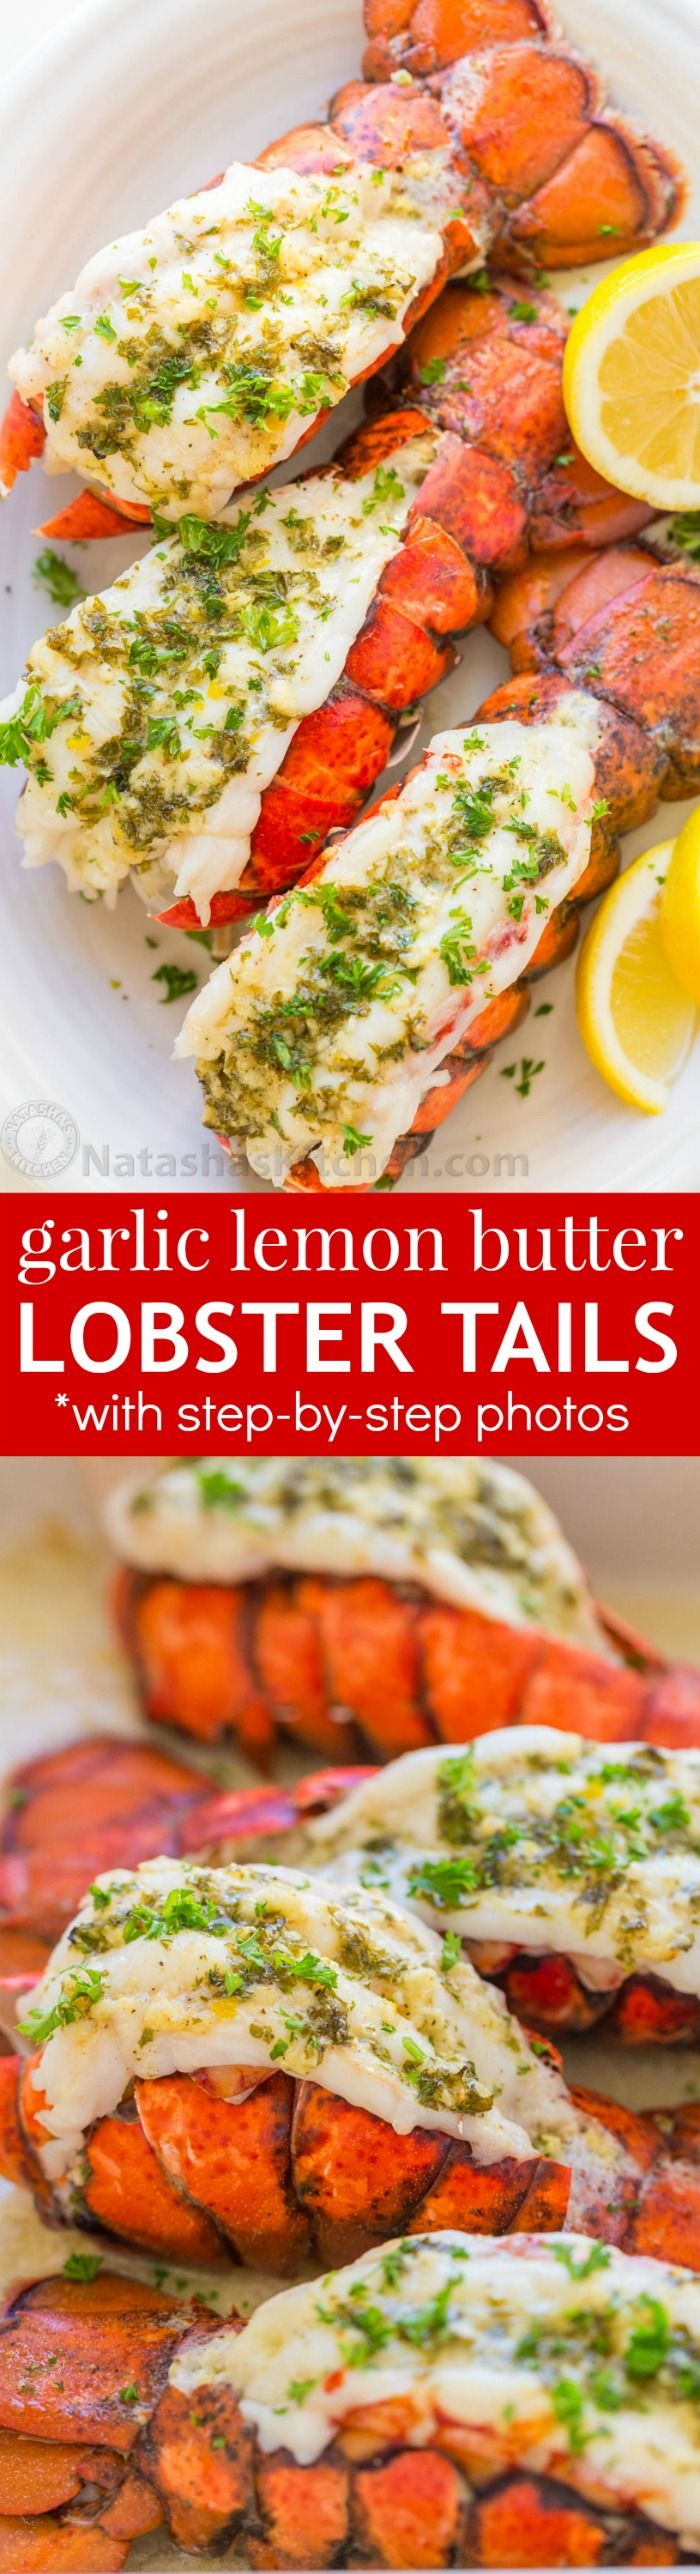 The ONLY Lobster Tails Recipe you'll need! Broiled lobster tails are juicy, flavorful, and quick to make! + How-To butterfly lobster tails photo tutorial! | natashaskitchen.com (garlic butter steak and potatoes)